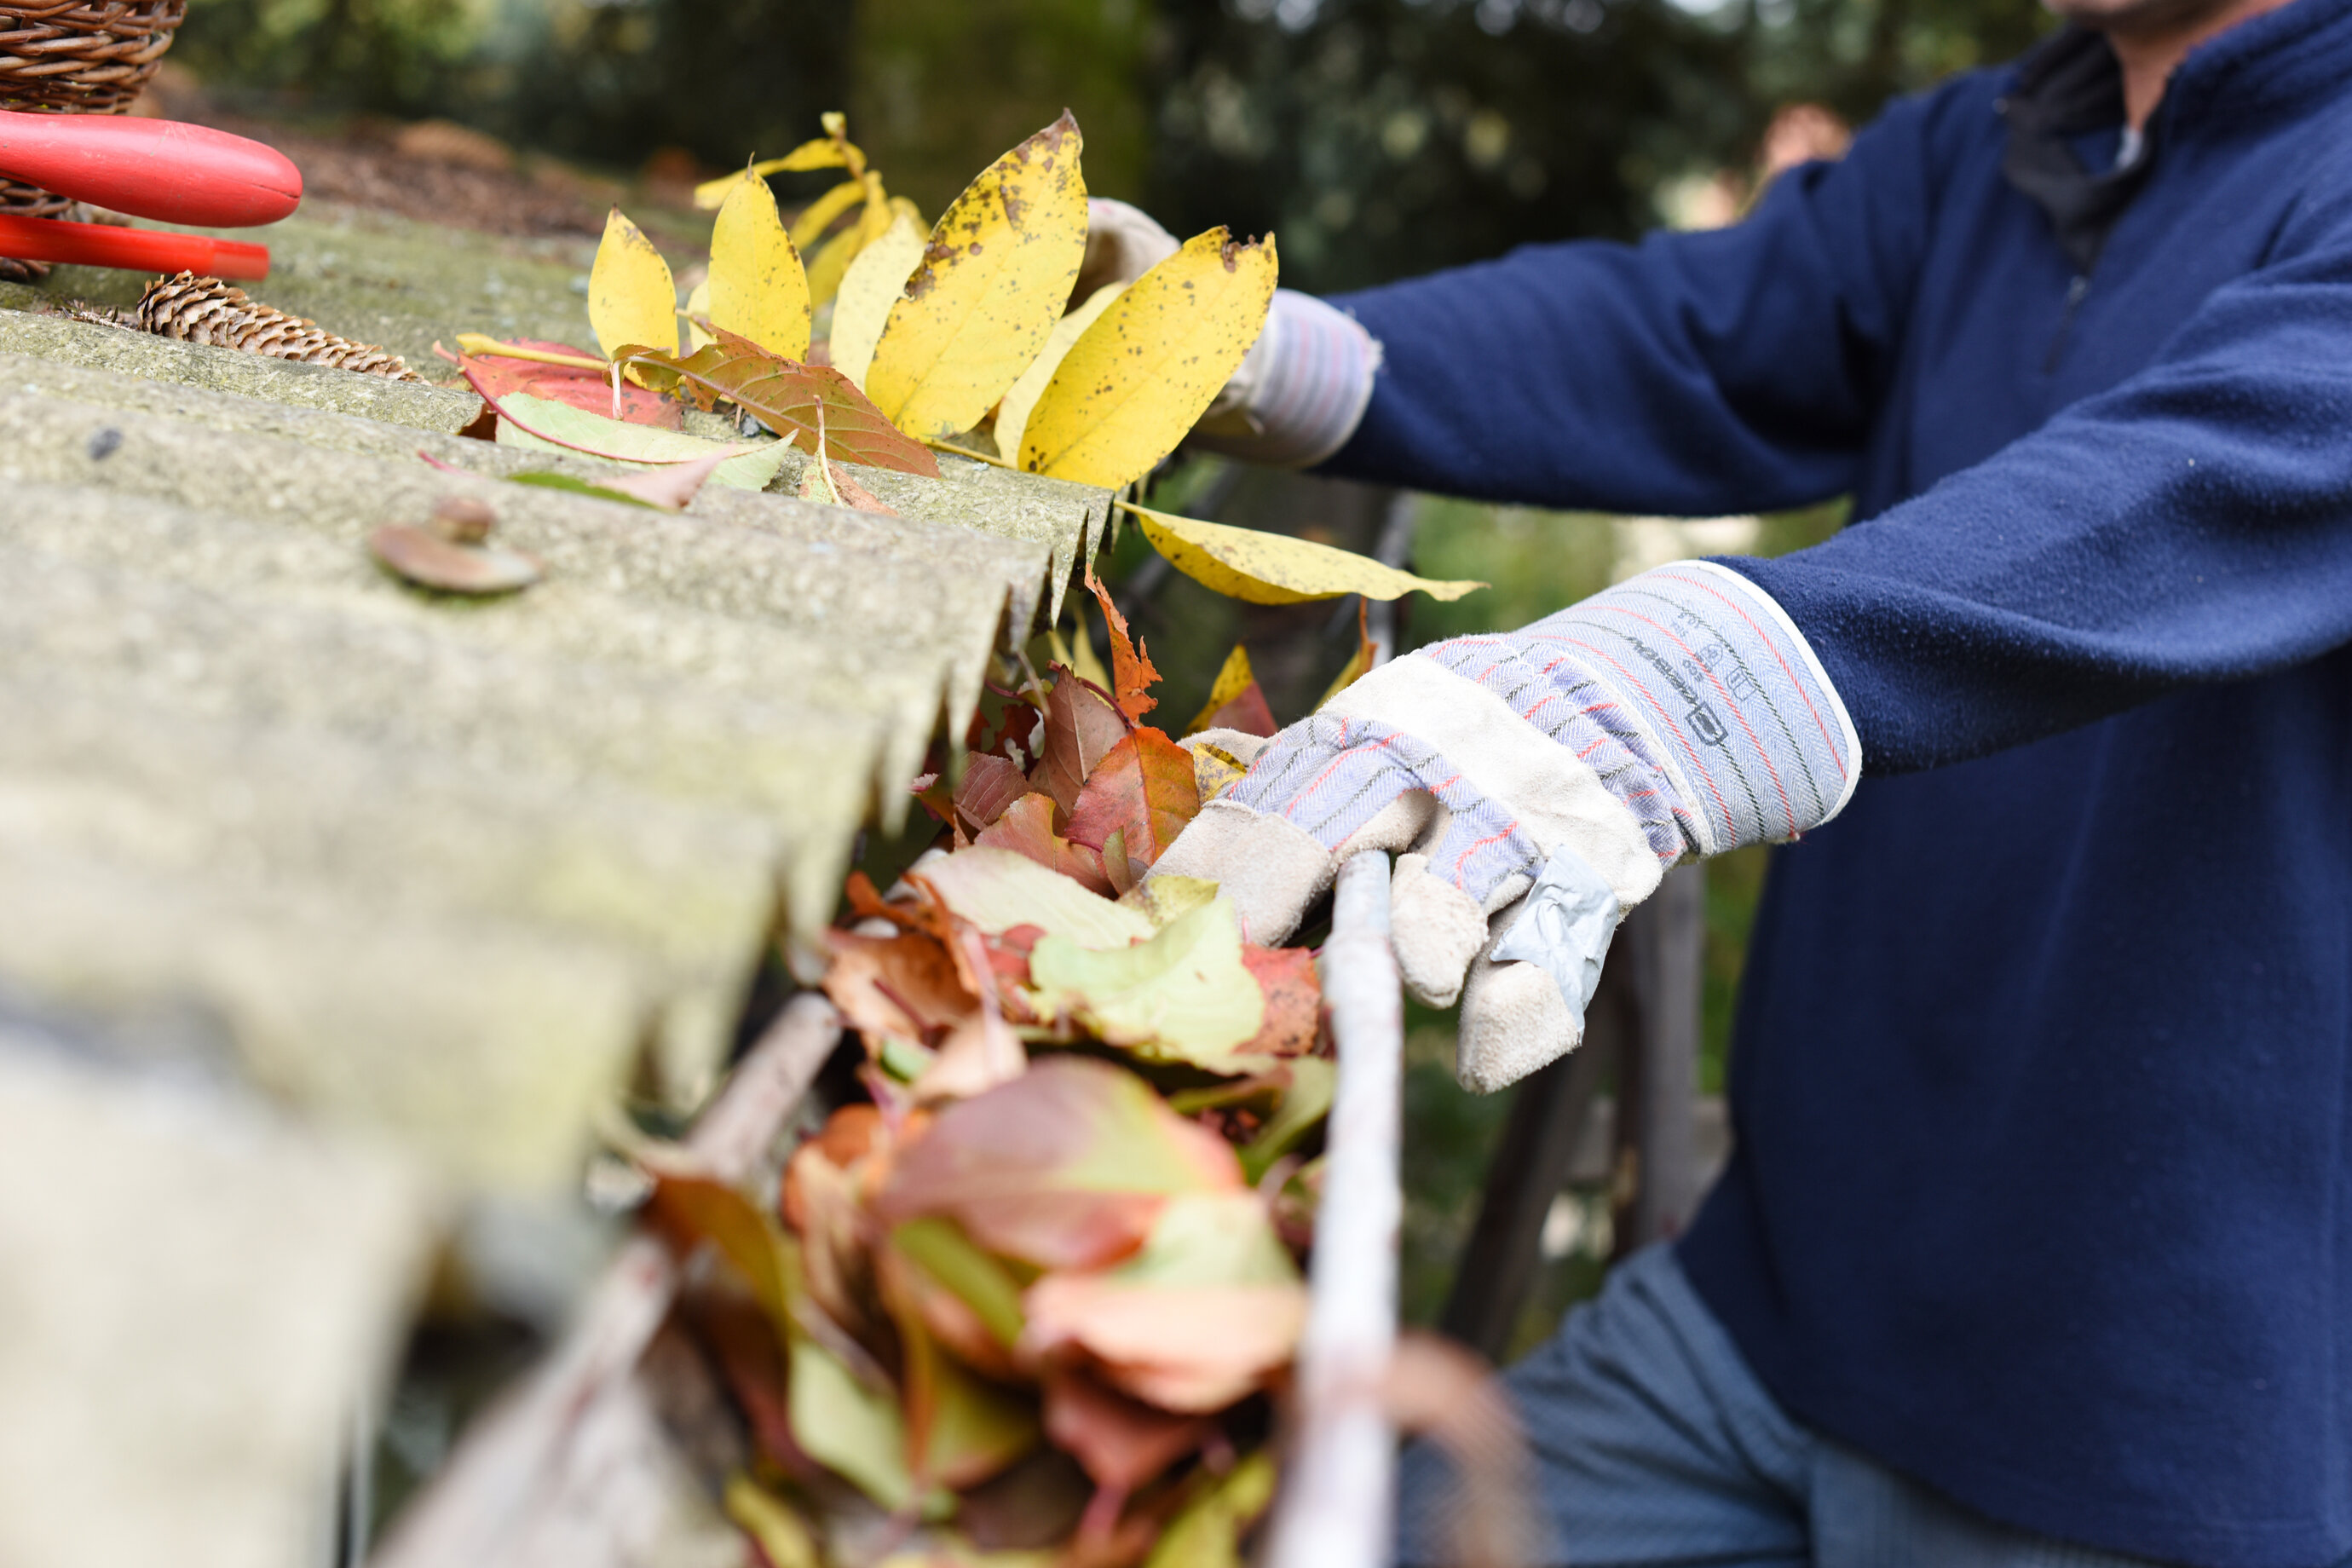 A professional wearing gloves and a navy blue shirt cleans fall leaves out of a gutter.